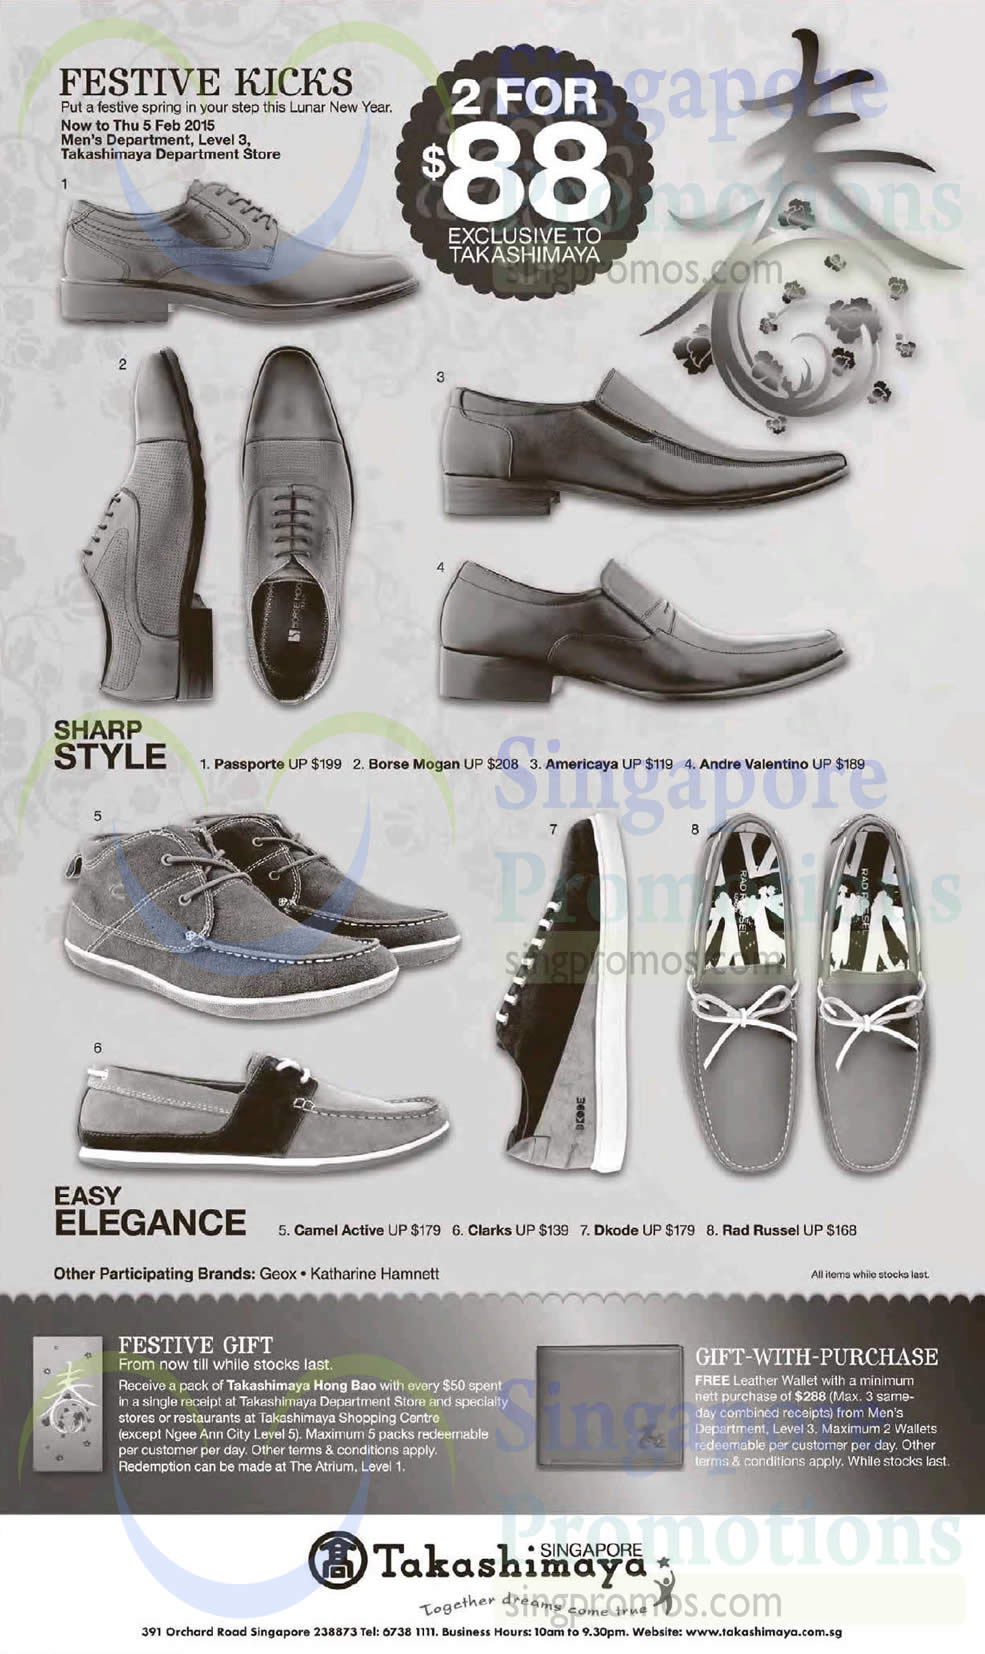 well known low price cheaper Men Shoes, Passporte, Borse Mogan, Americaya, Andre ...